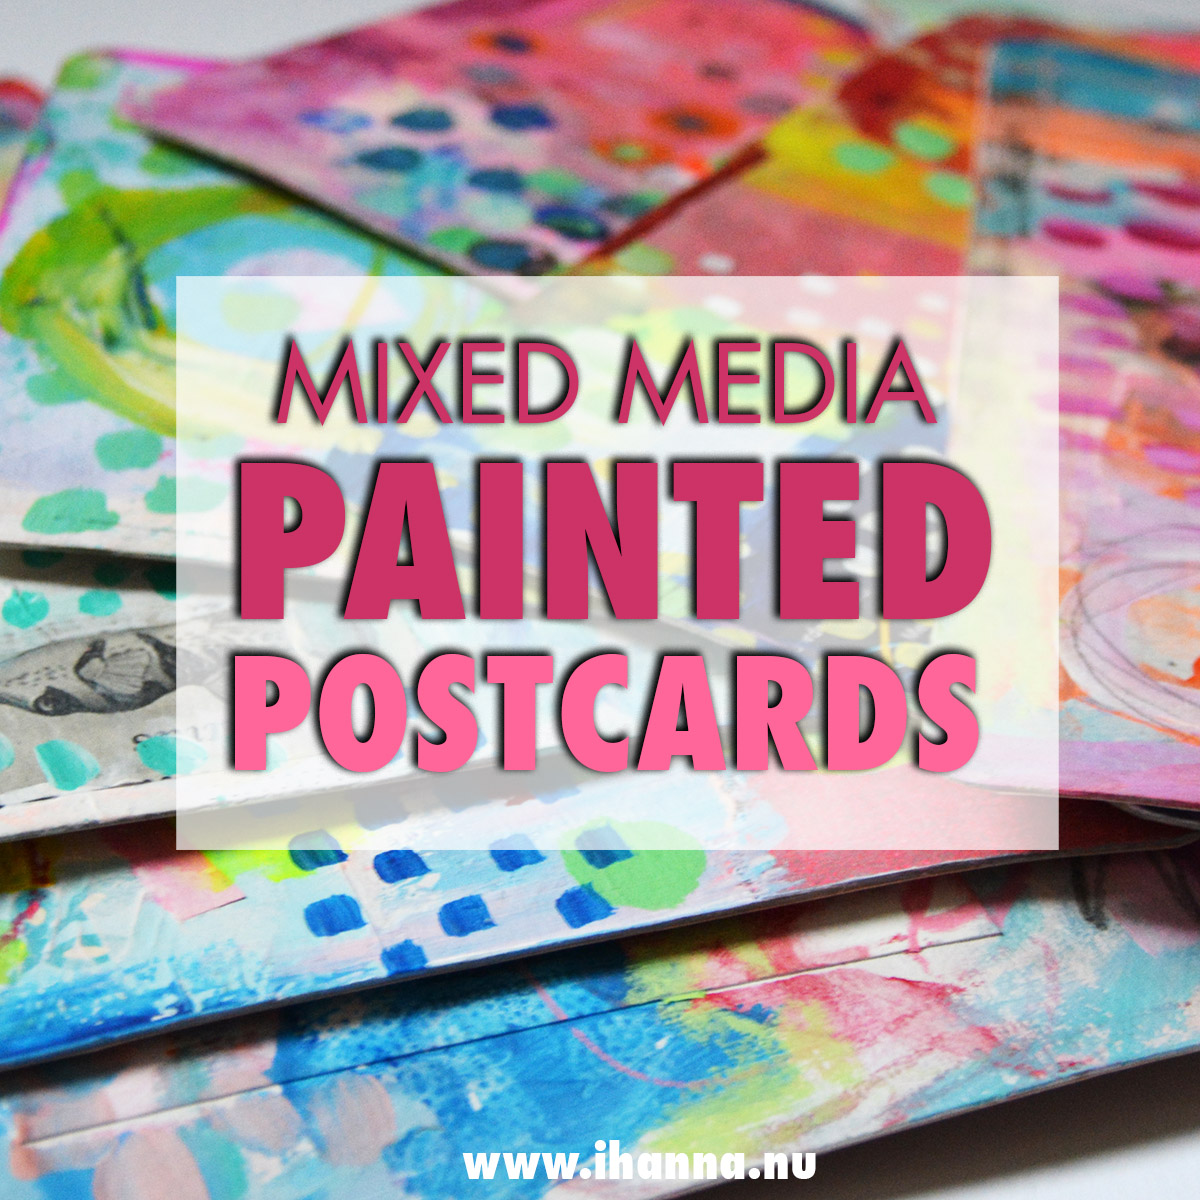 Mixed Media Painted Postcards by iHanna of www.ihanna.nu #diypostcardswap